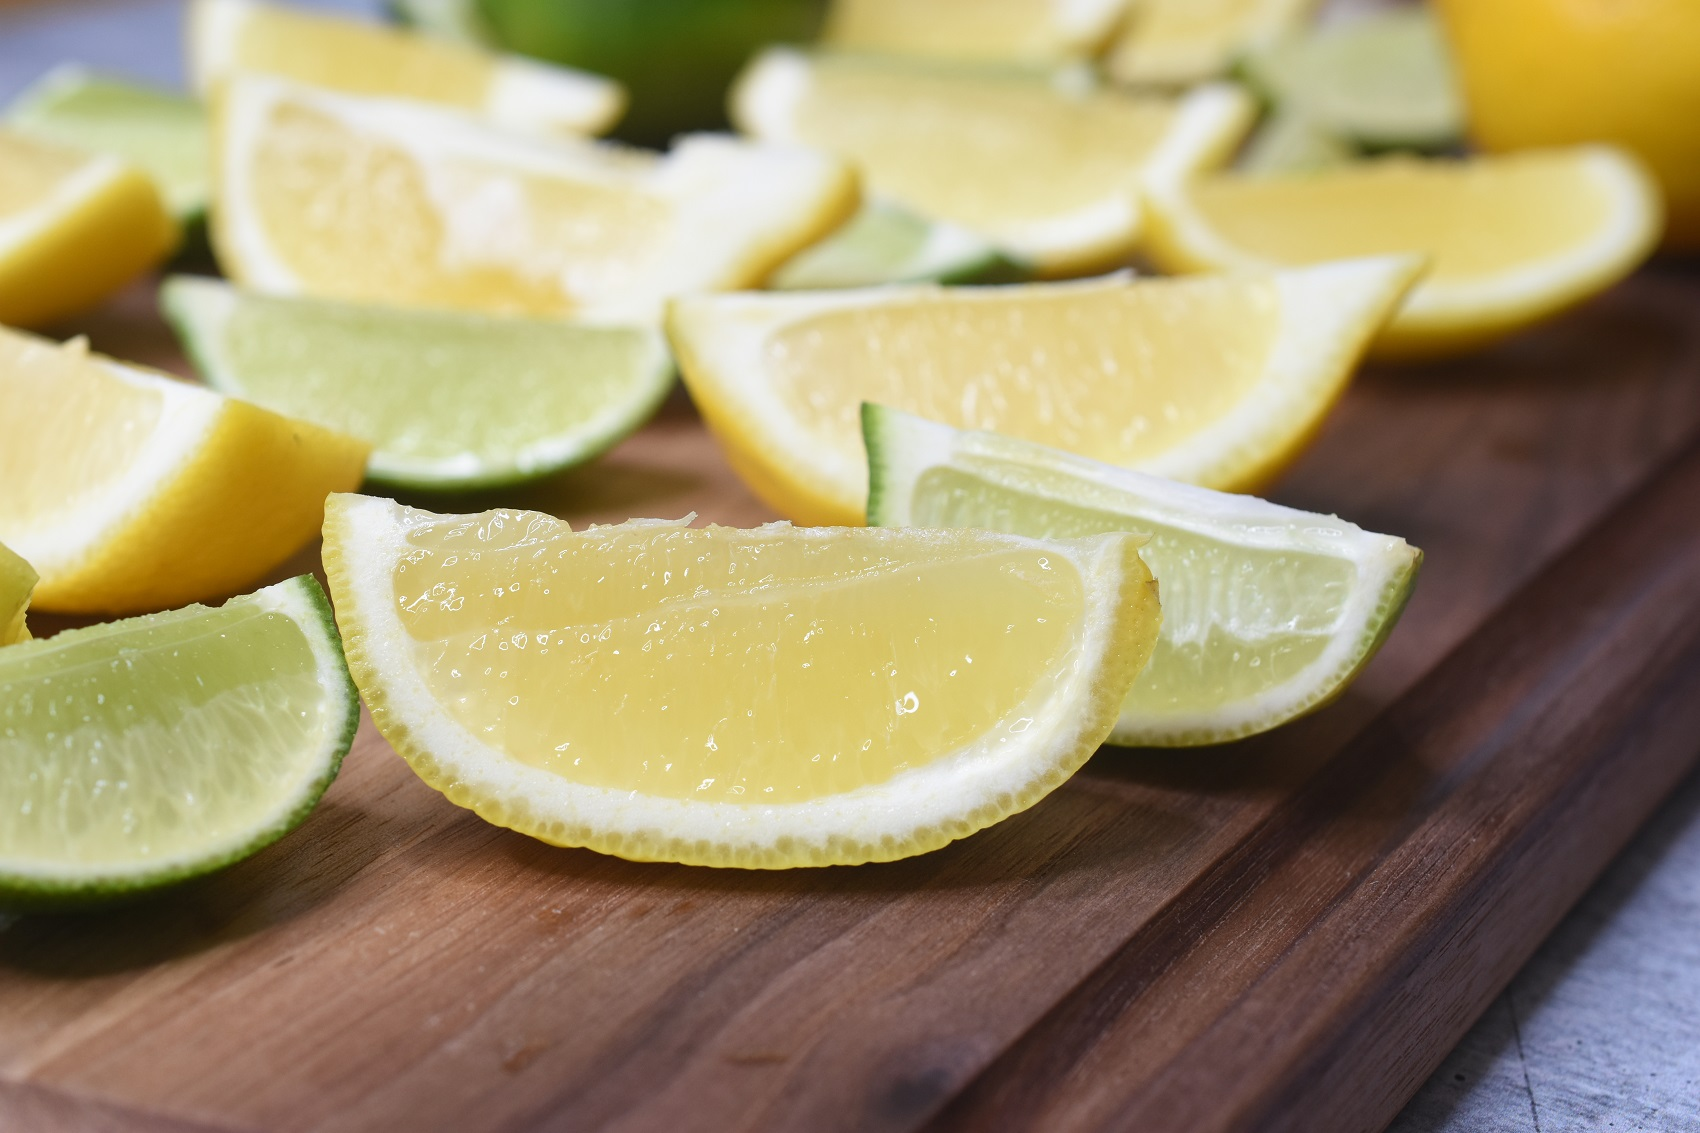 How to store lemons and limes